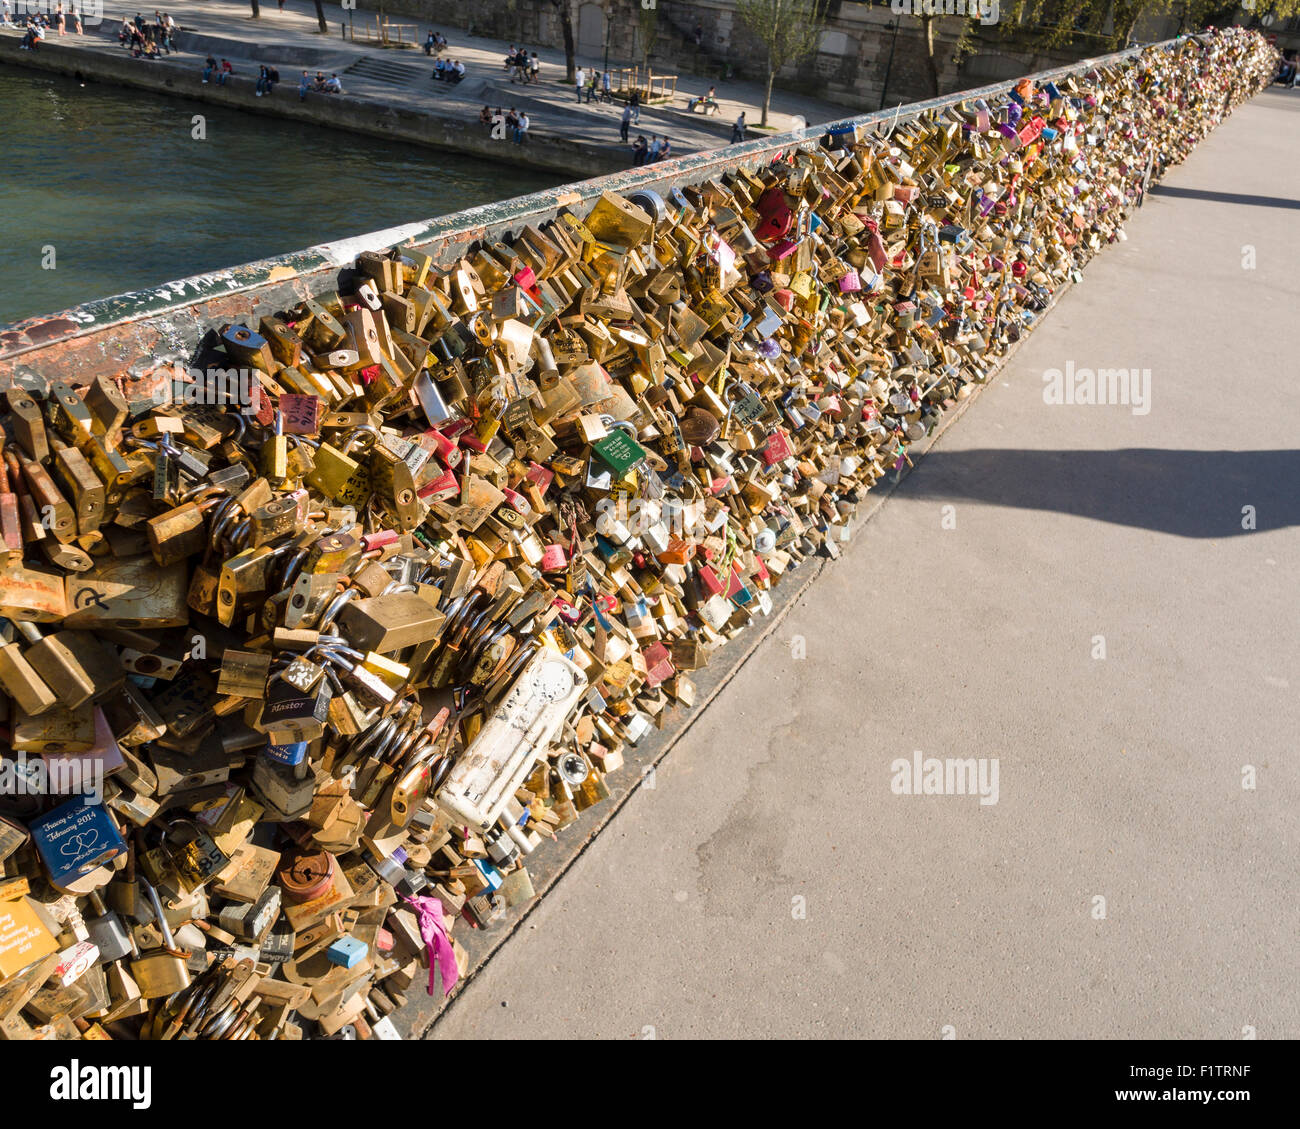 Locks over the Seine. Thousands of locks fill the sides of the bridge over the famous river. - Stock Image